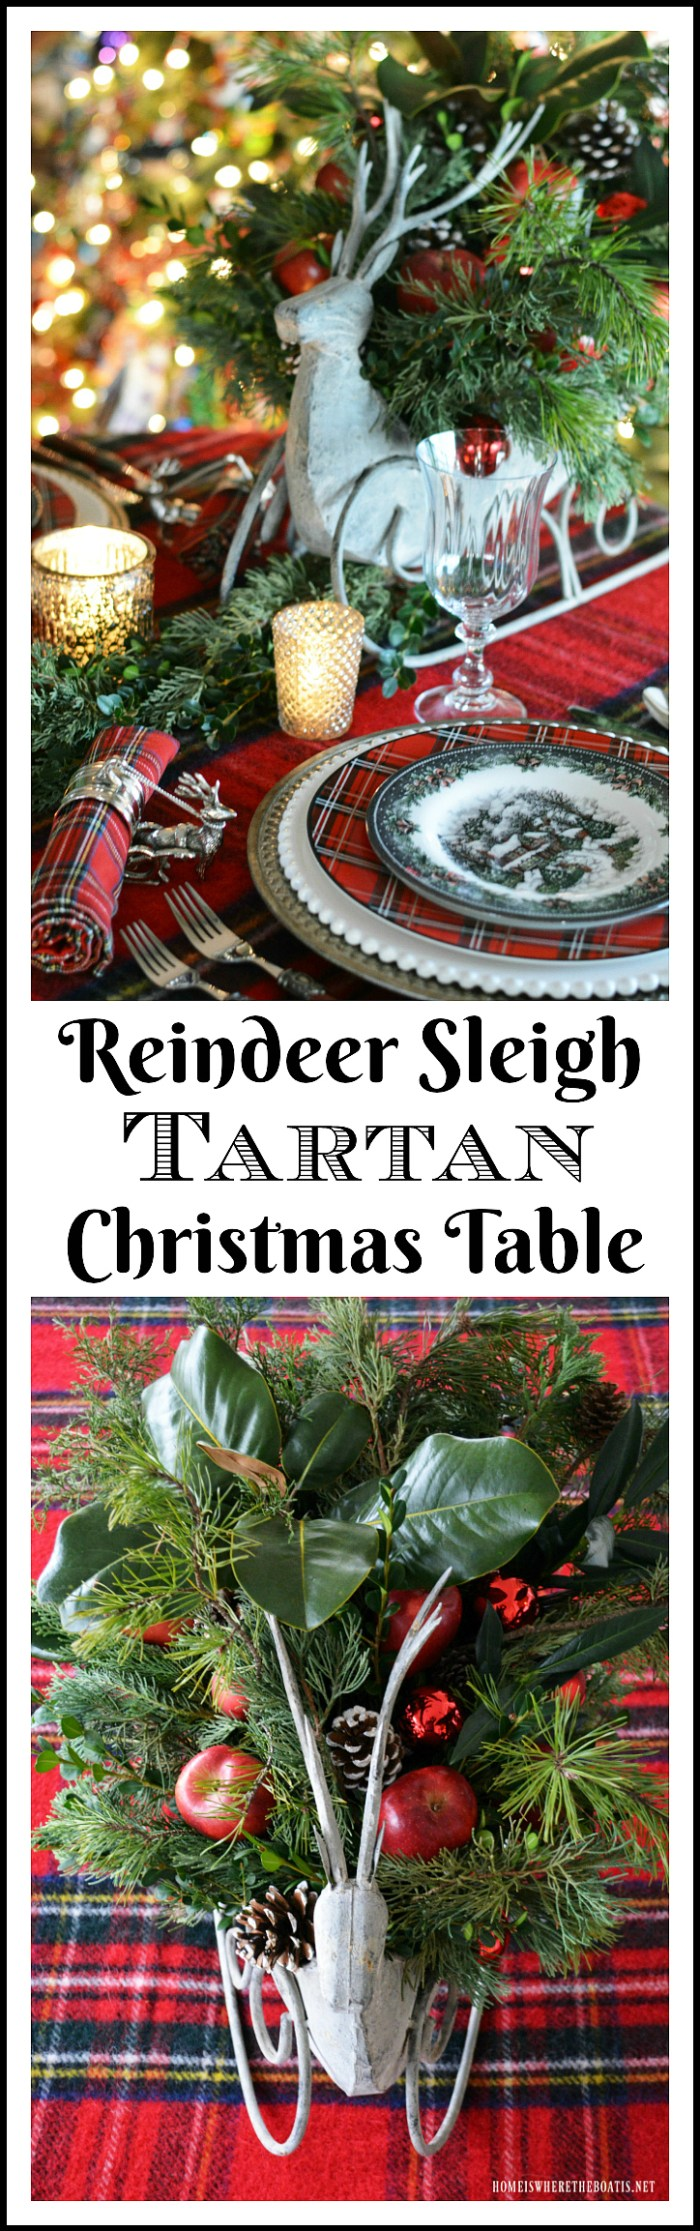 Reindeer Sleigh Tartan Christmas Table and Centerpiece | homeiswheretheboatis.net #Christmas #tablescapes #tartan #plaid